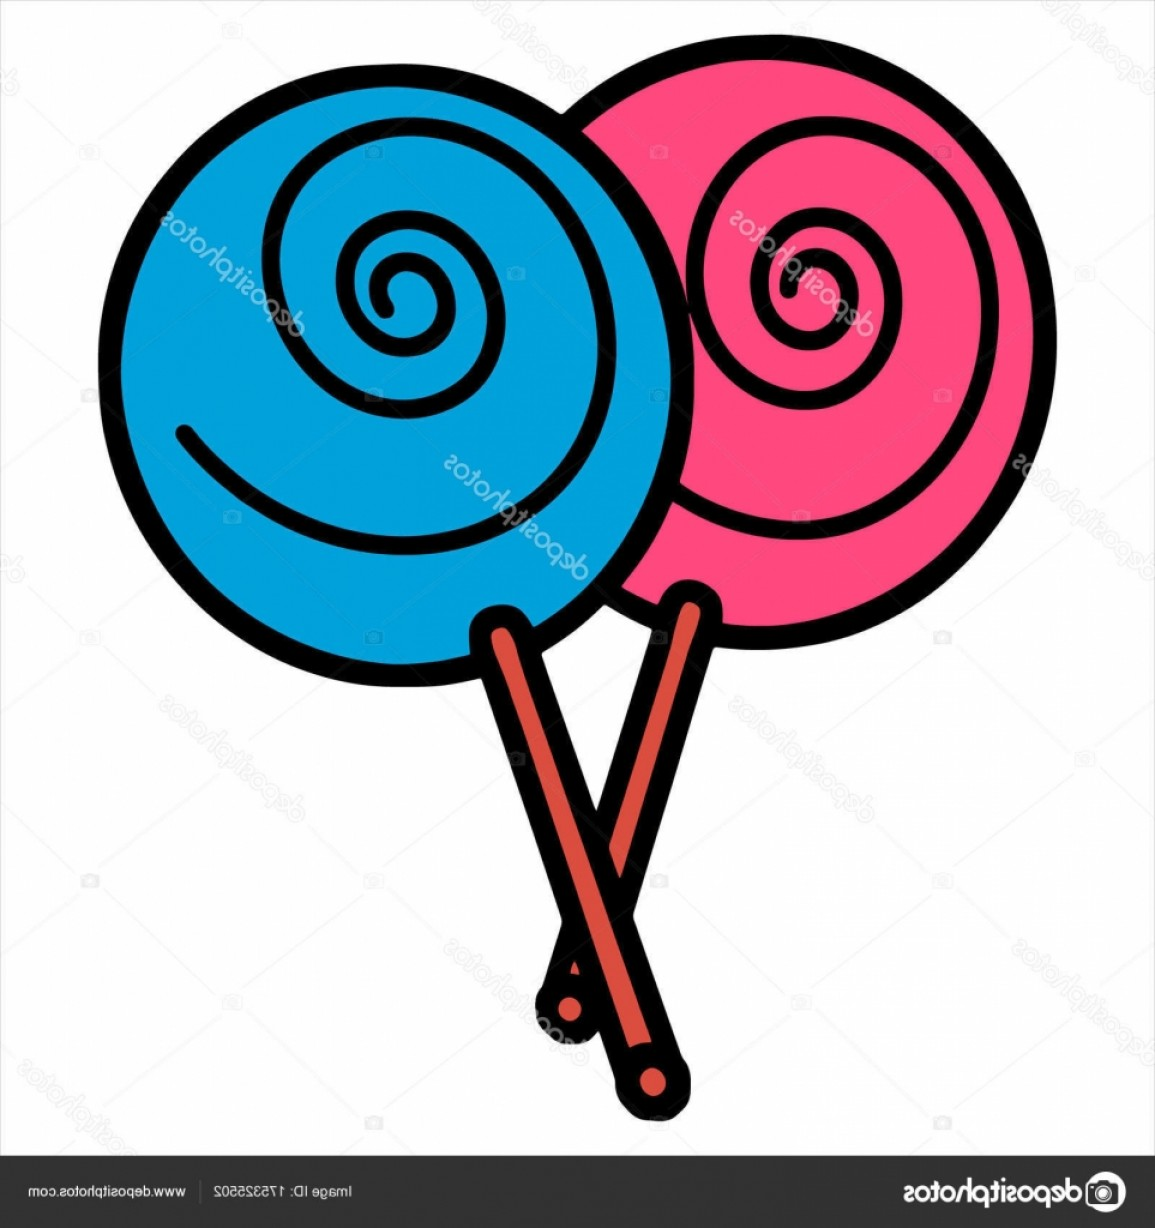 Lollipop Vector Silhouette: Stock Illustration Vector Illustration Cartoon Lollipop Color